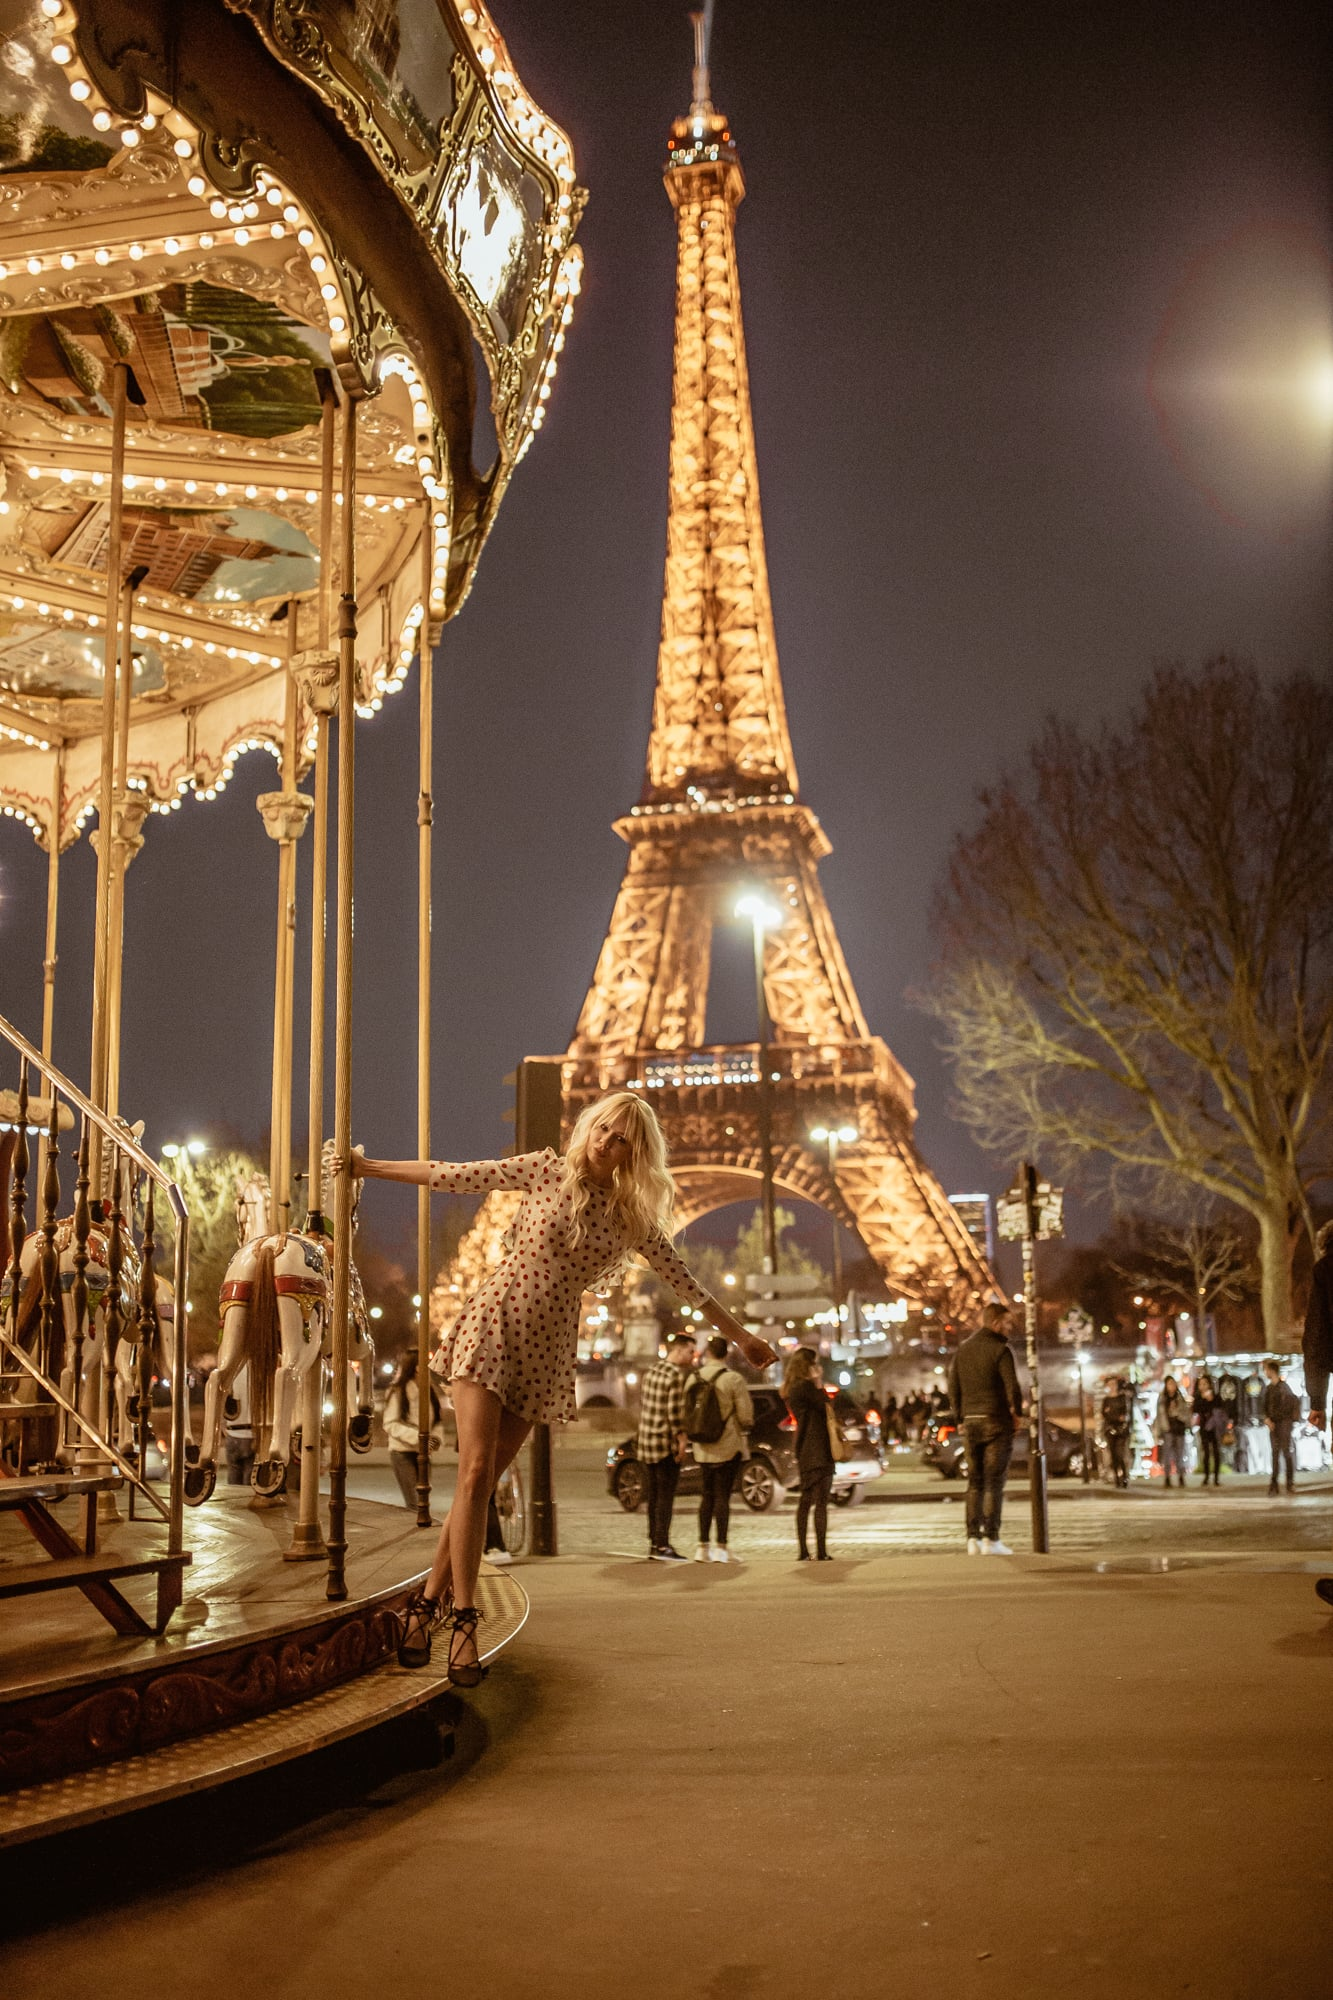 nighttime carousel ride in Paris